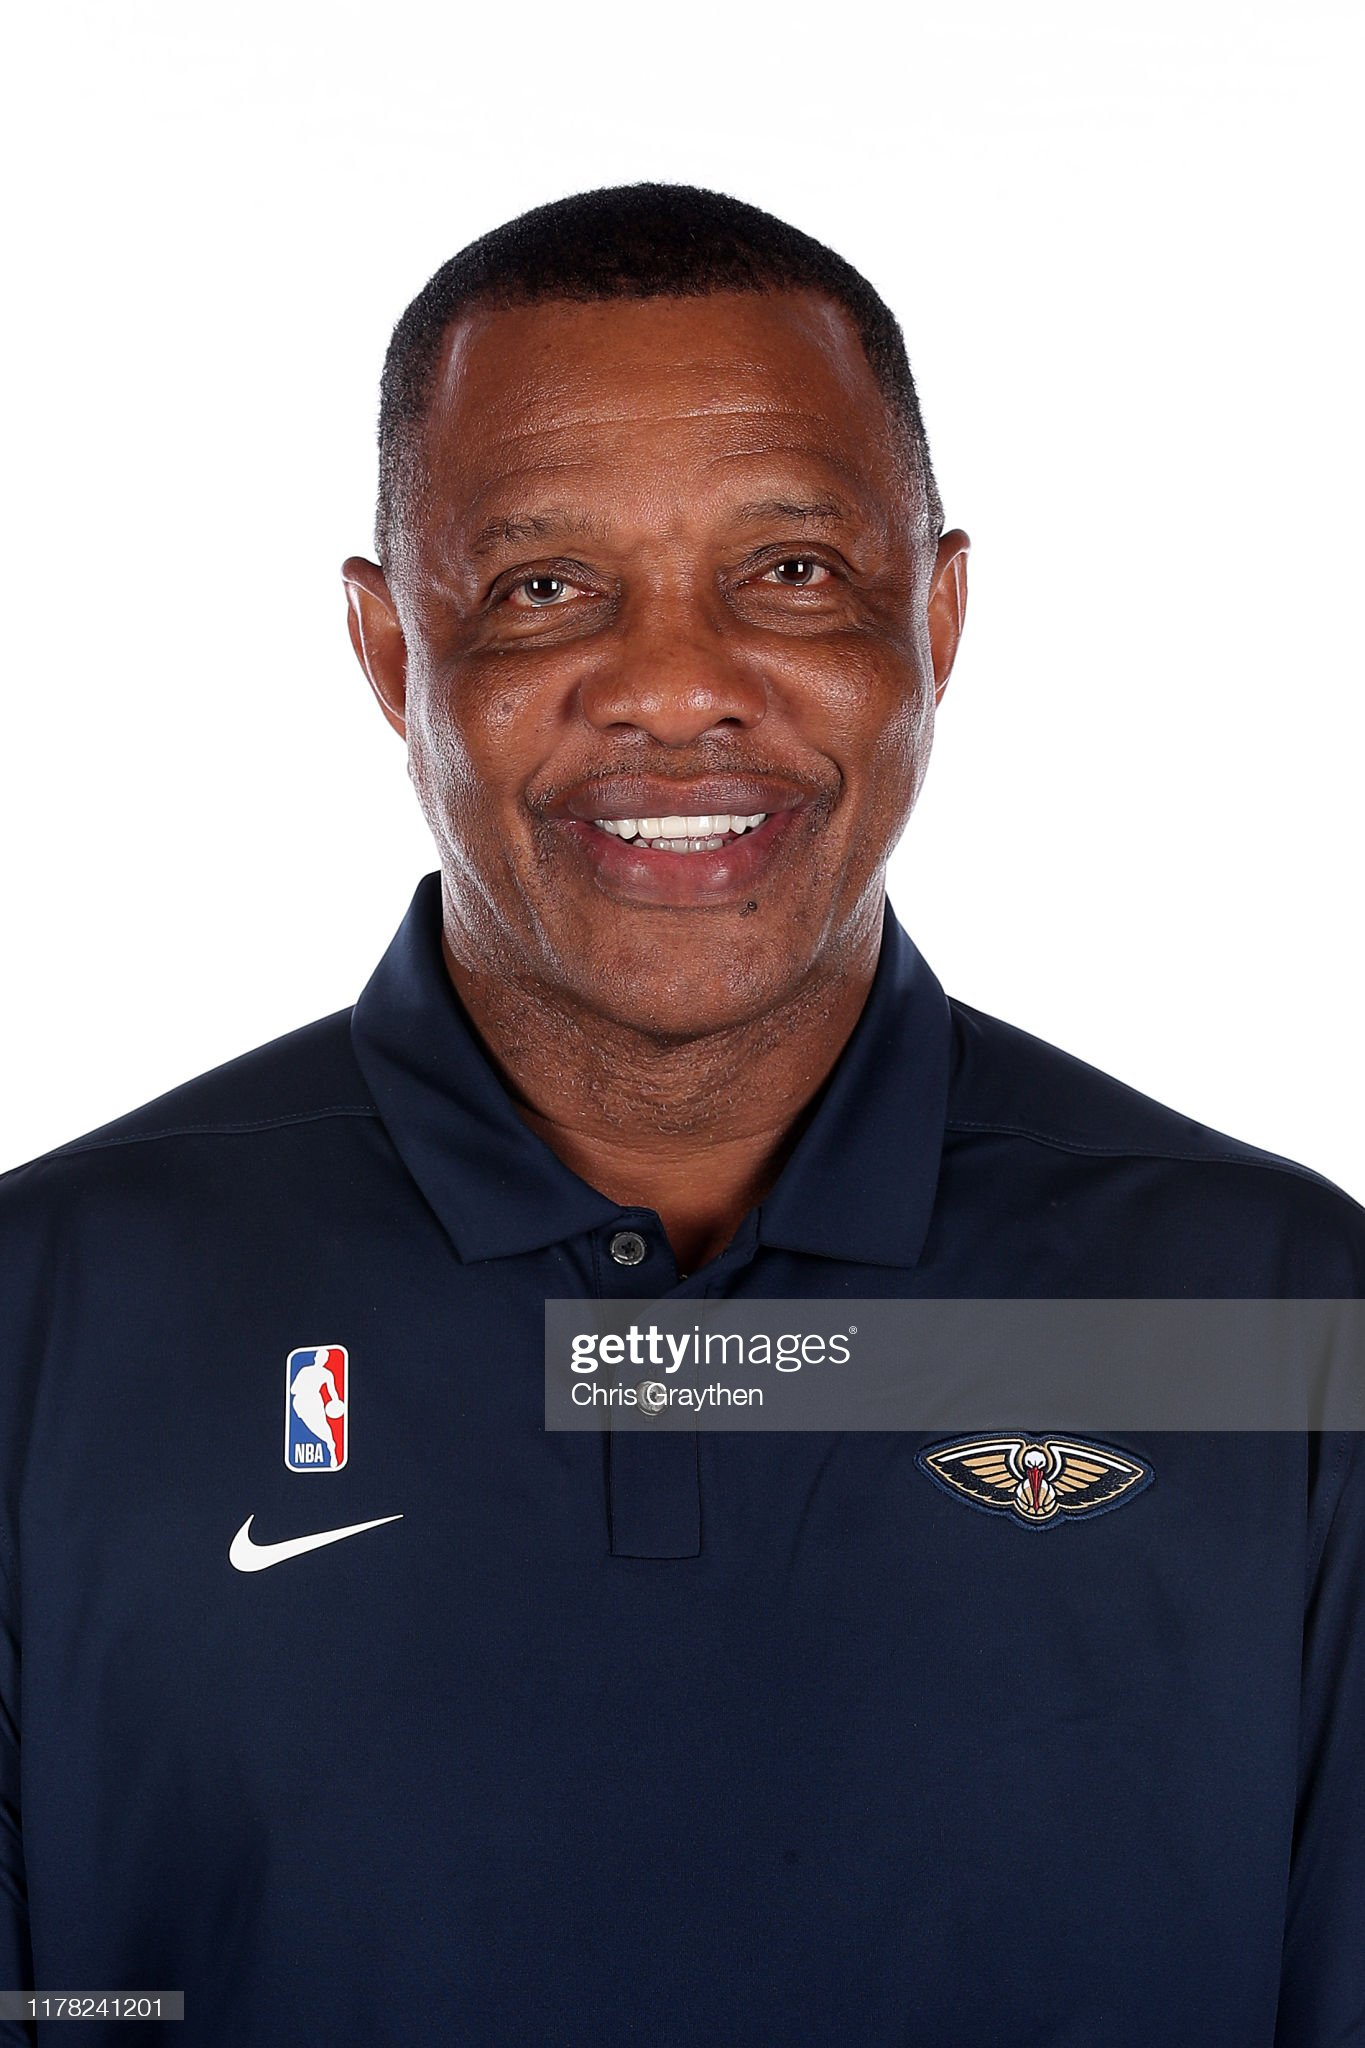 COLOR DE OJOS (clasificación y debate de personas famosas) - Página 11 Head-coach-alvin-gentry-of-the-new-orleans-pelicans-poses-for-a-photo-picture-id1178241201?s=2048x2048